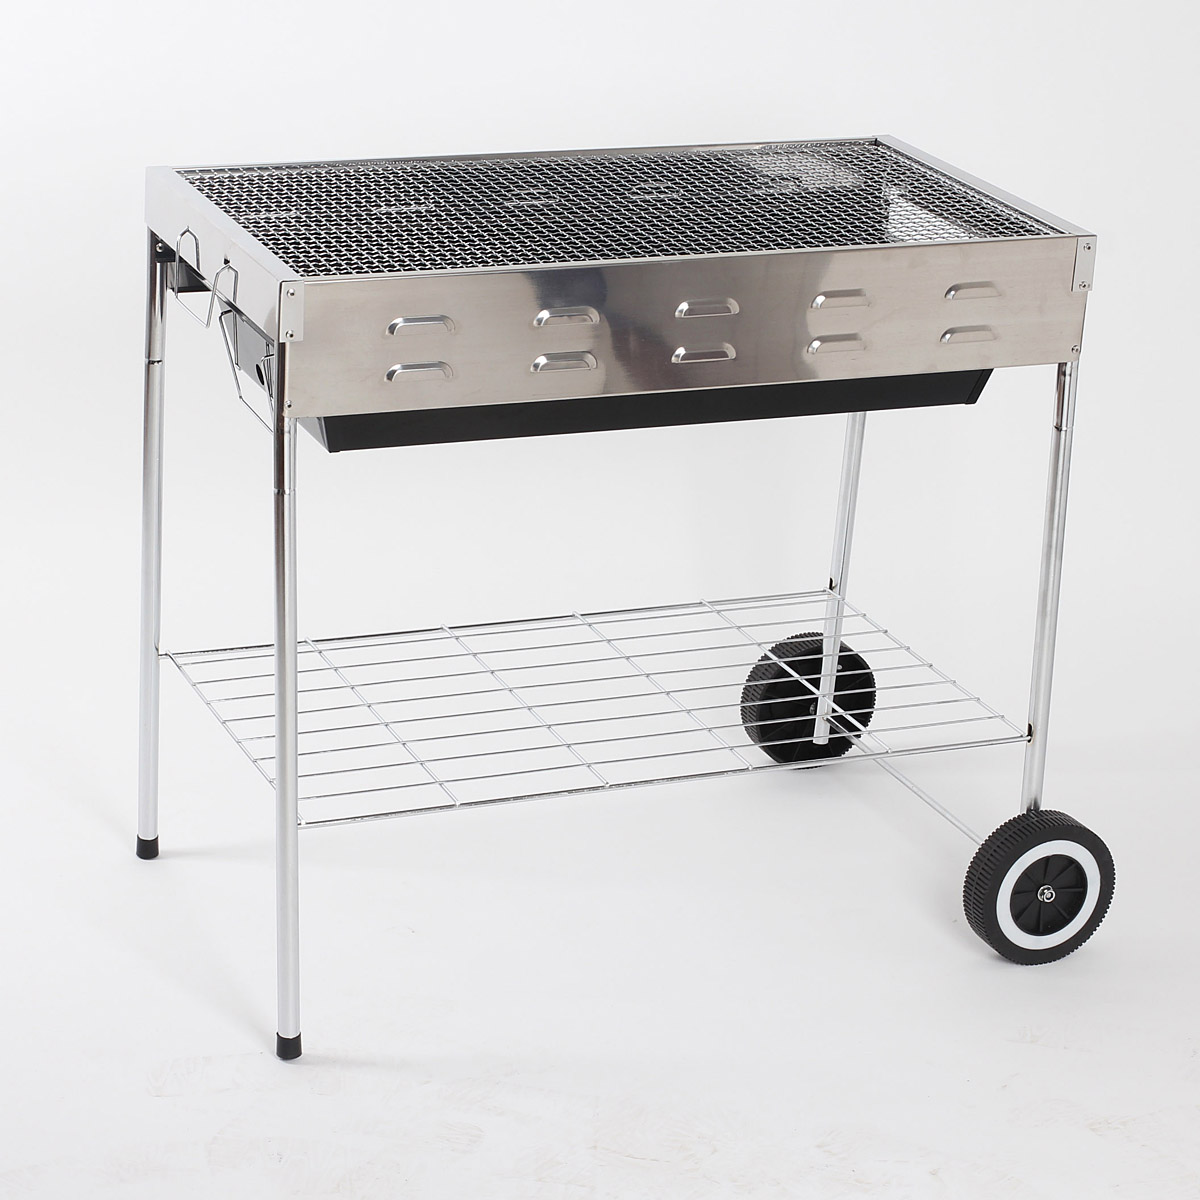 Super quality movable outdoor bbq charcoal grill